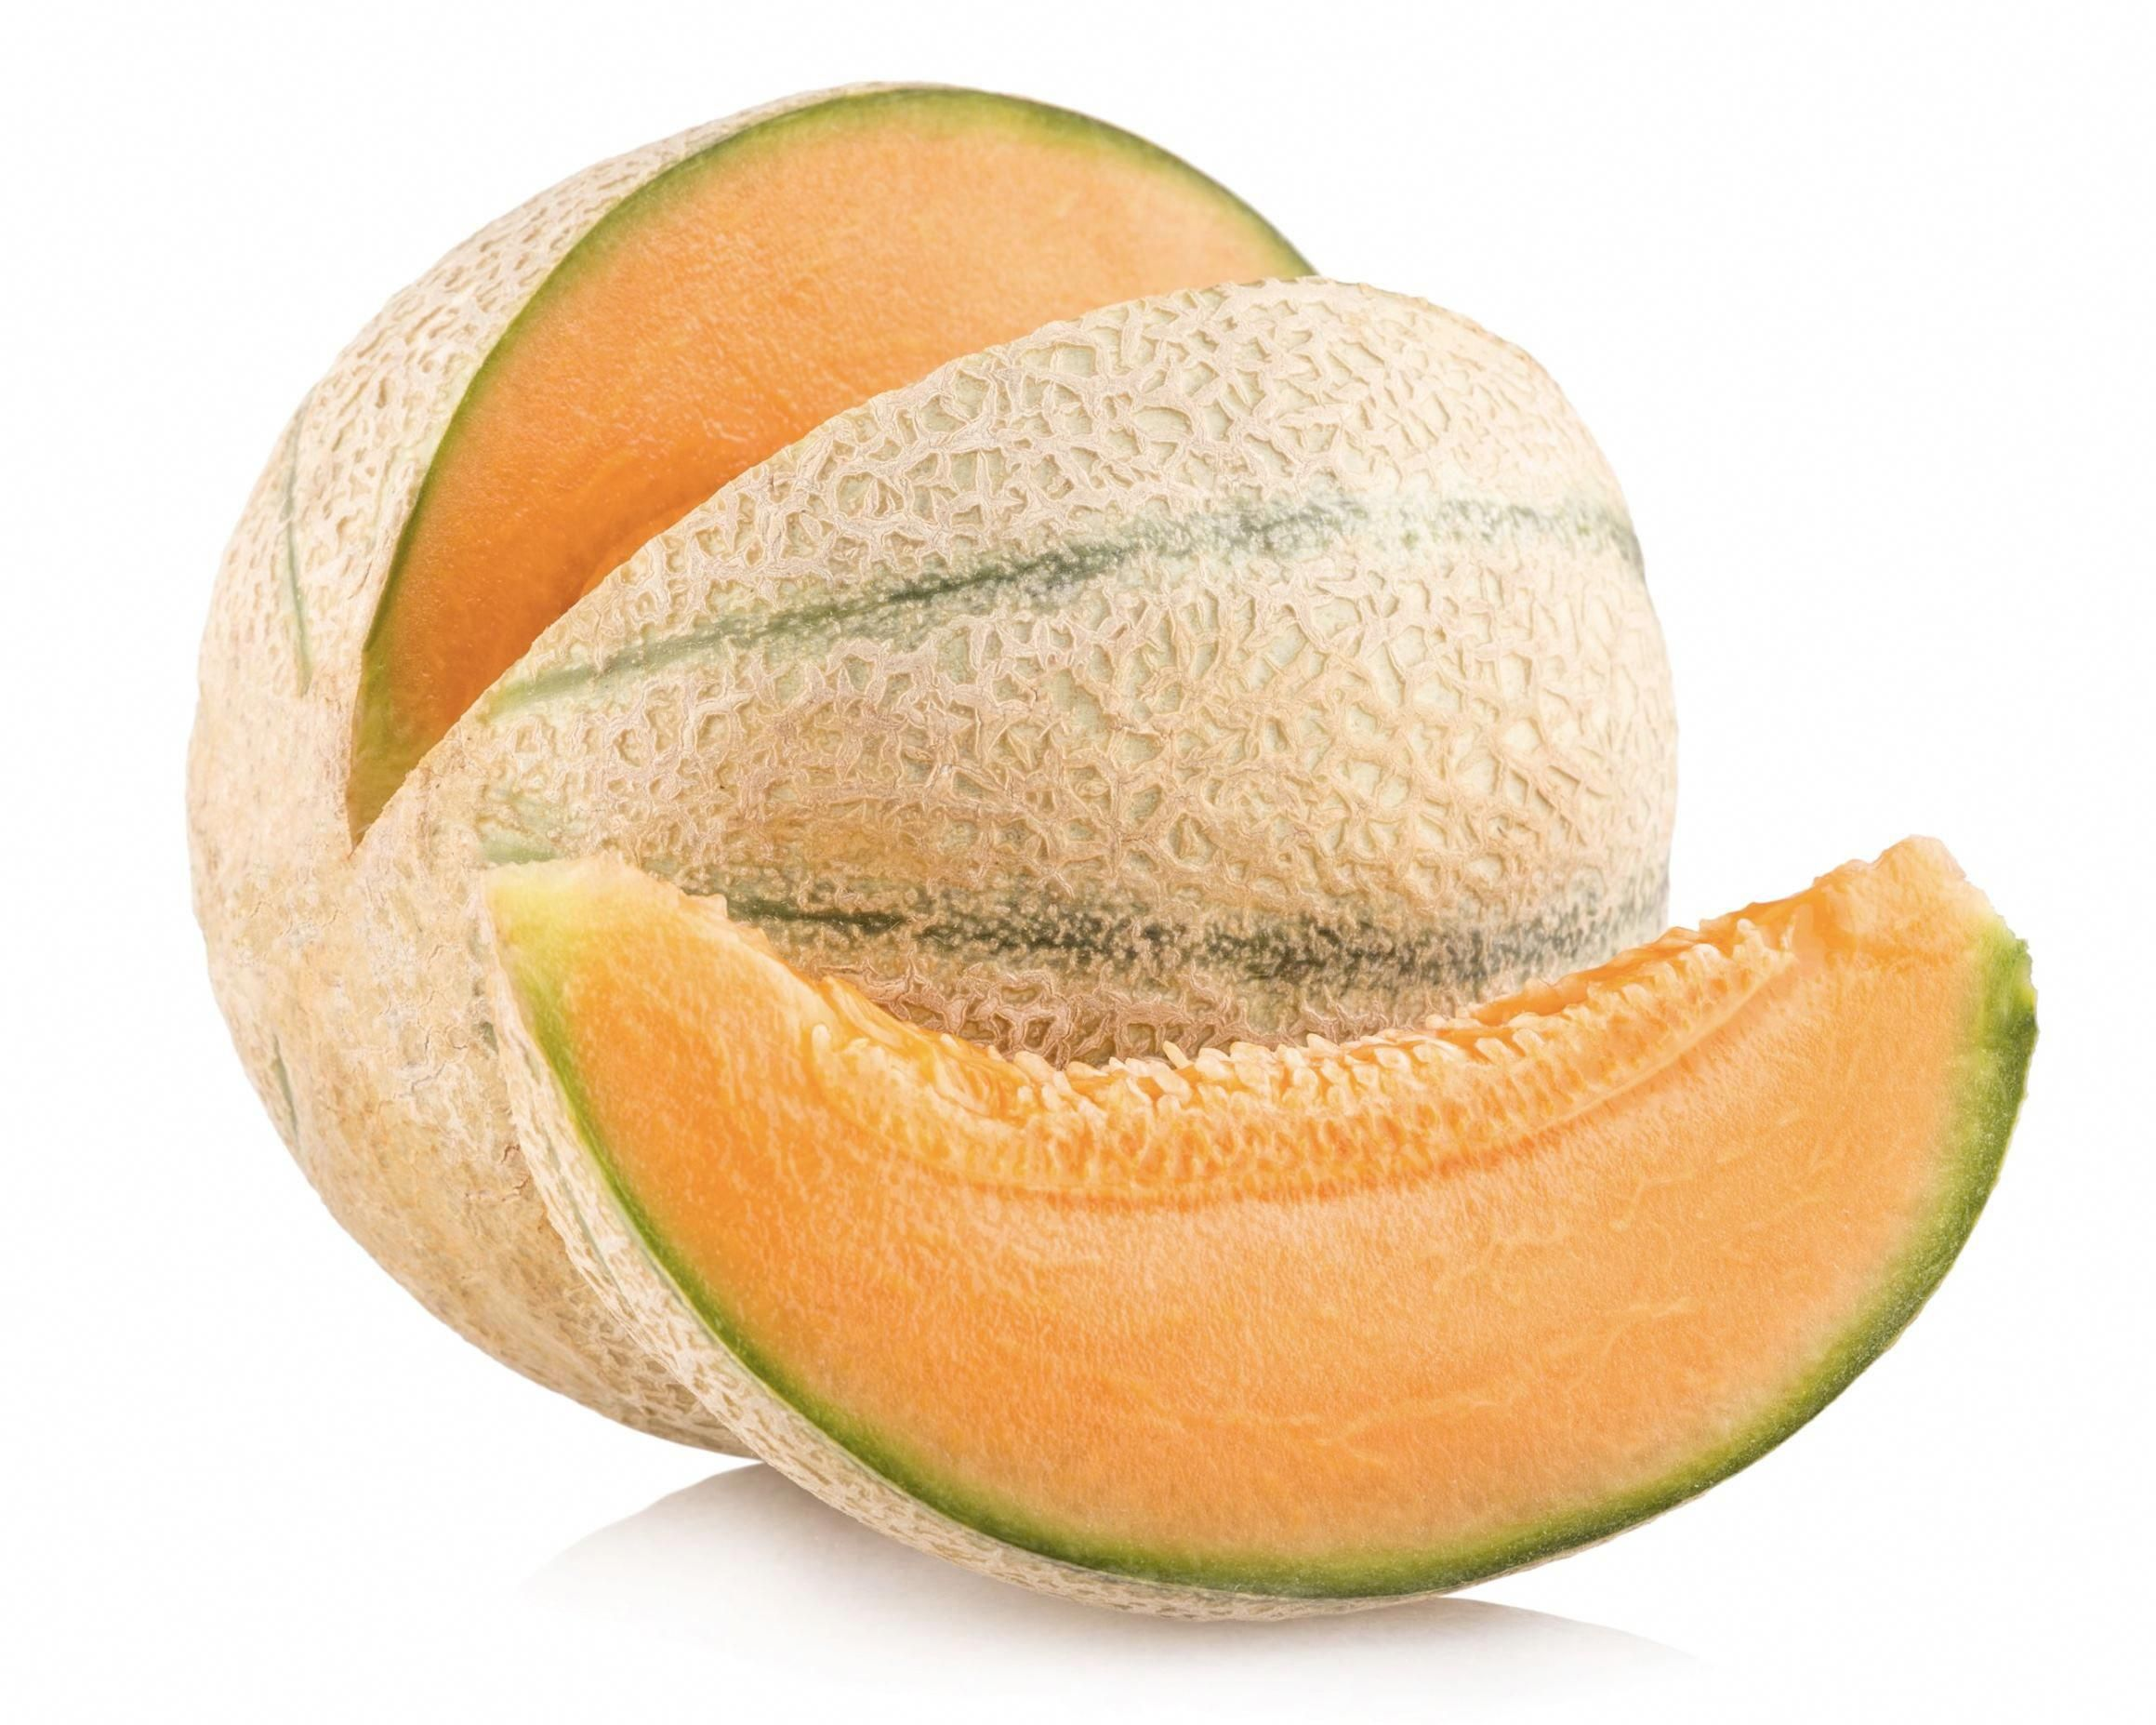 7 Easy Storage Tips To Keep Produce Fresh Longer Isolate Ethylene Gas Producing It Cantaloupe Nutrition Facts Fruit Nutrition Facts Fruit And Vegetable Storage The cantaloupe, rockmelon (australia and new zealand), sweet melon, or spanspek (south africa) is a melon that is a variety of the muskmelon species (cucumis melo) from the family cucurbitaceae. pinterest